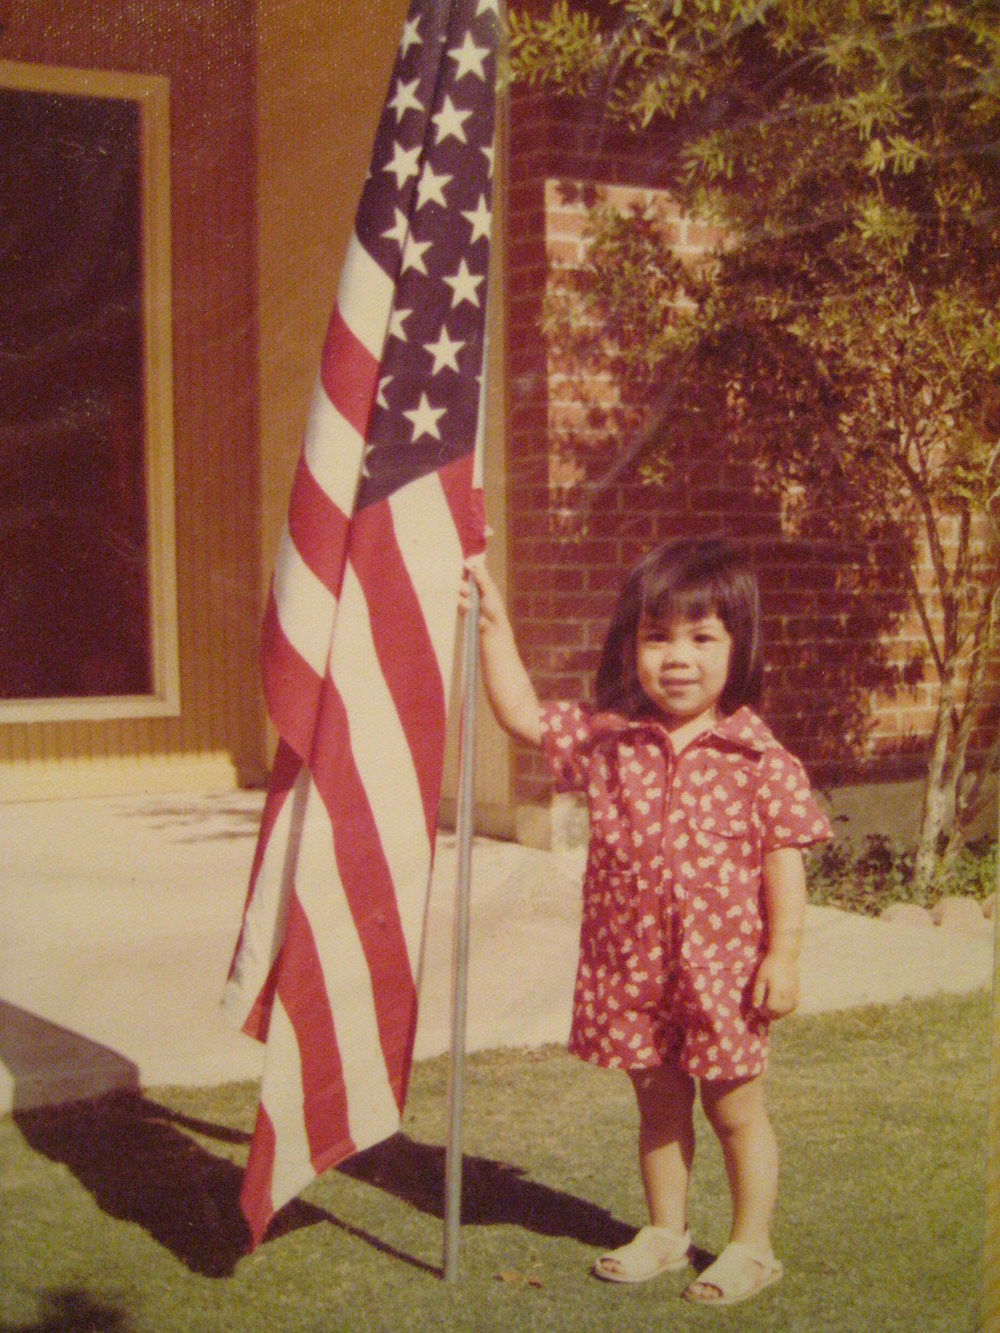 Kimberly Childhood Photo.JPG